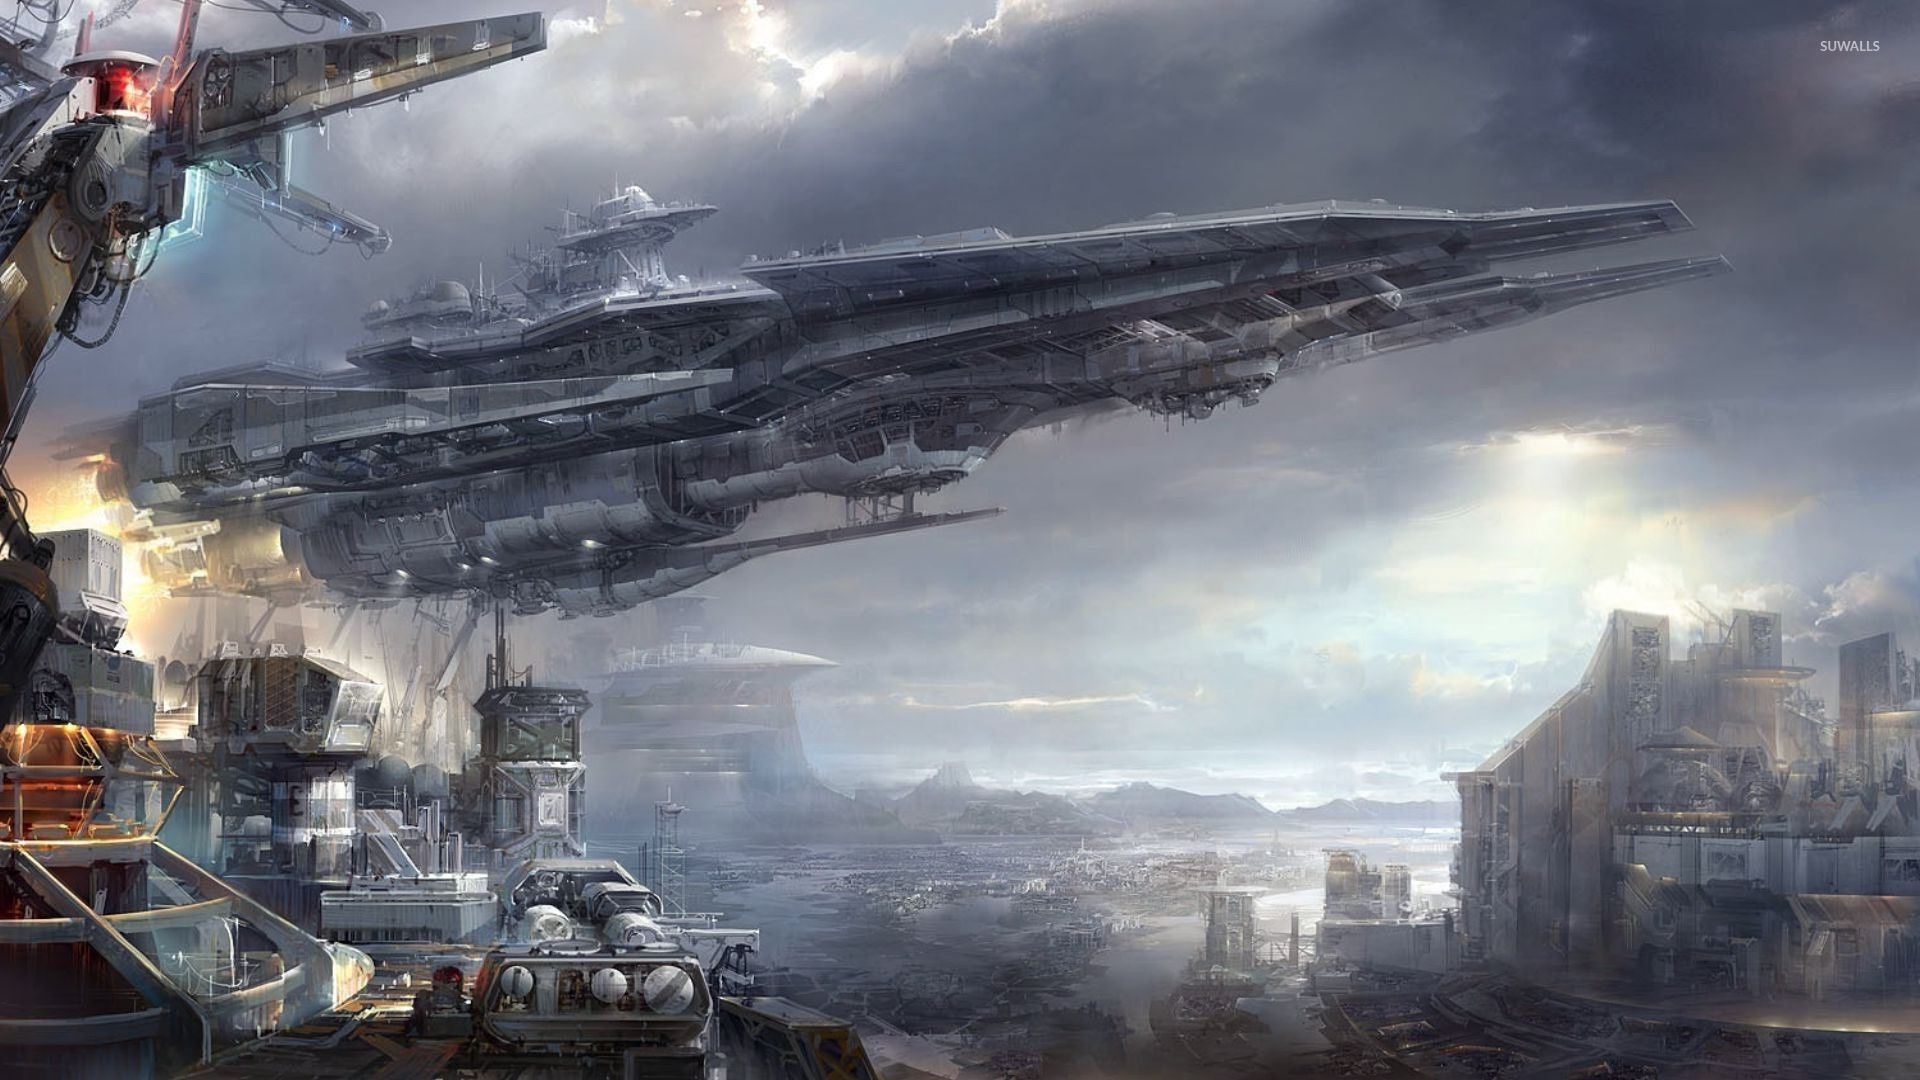 Space Station Wallpaper Fantasy Wallpapers 29437